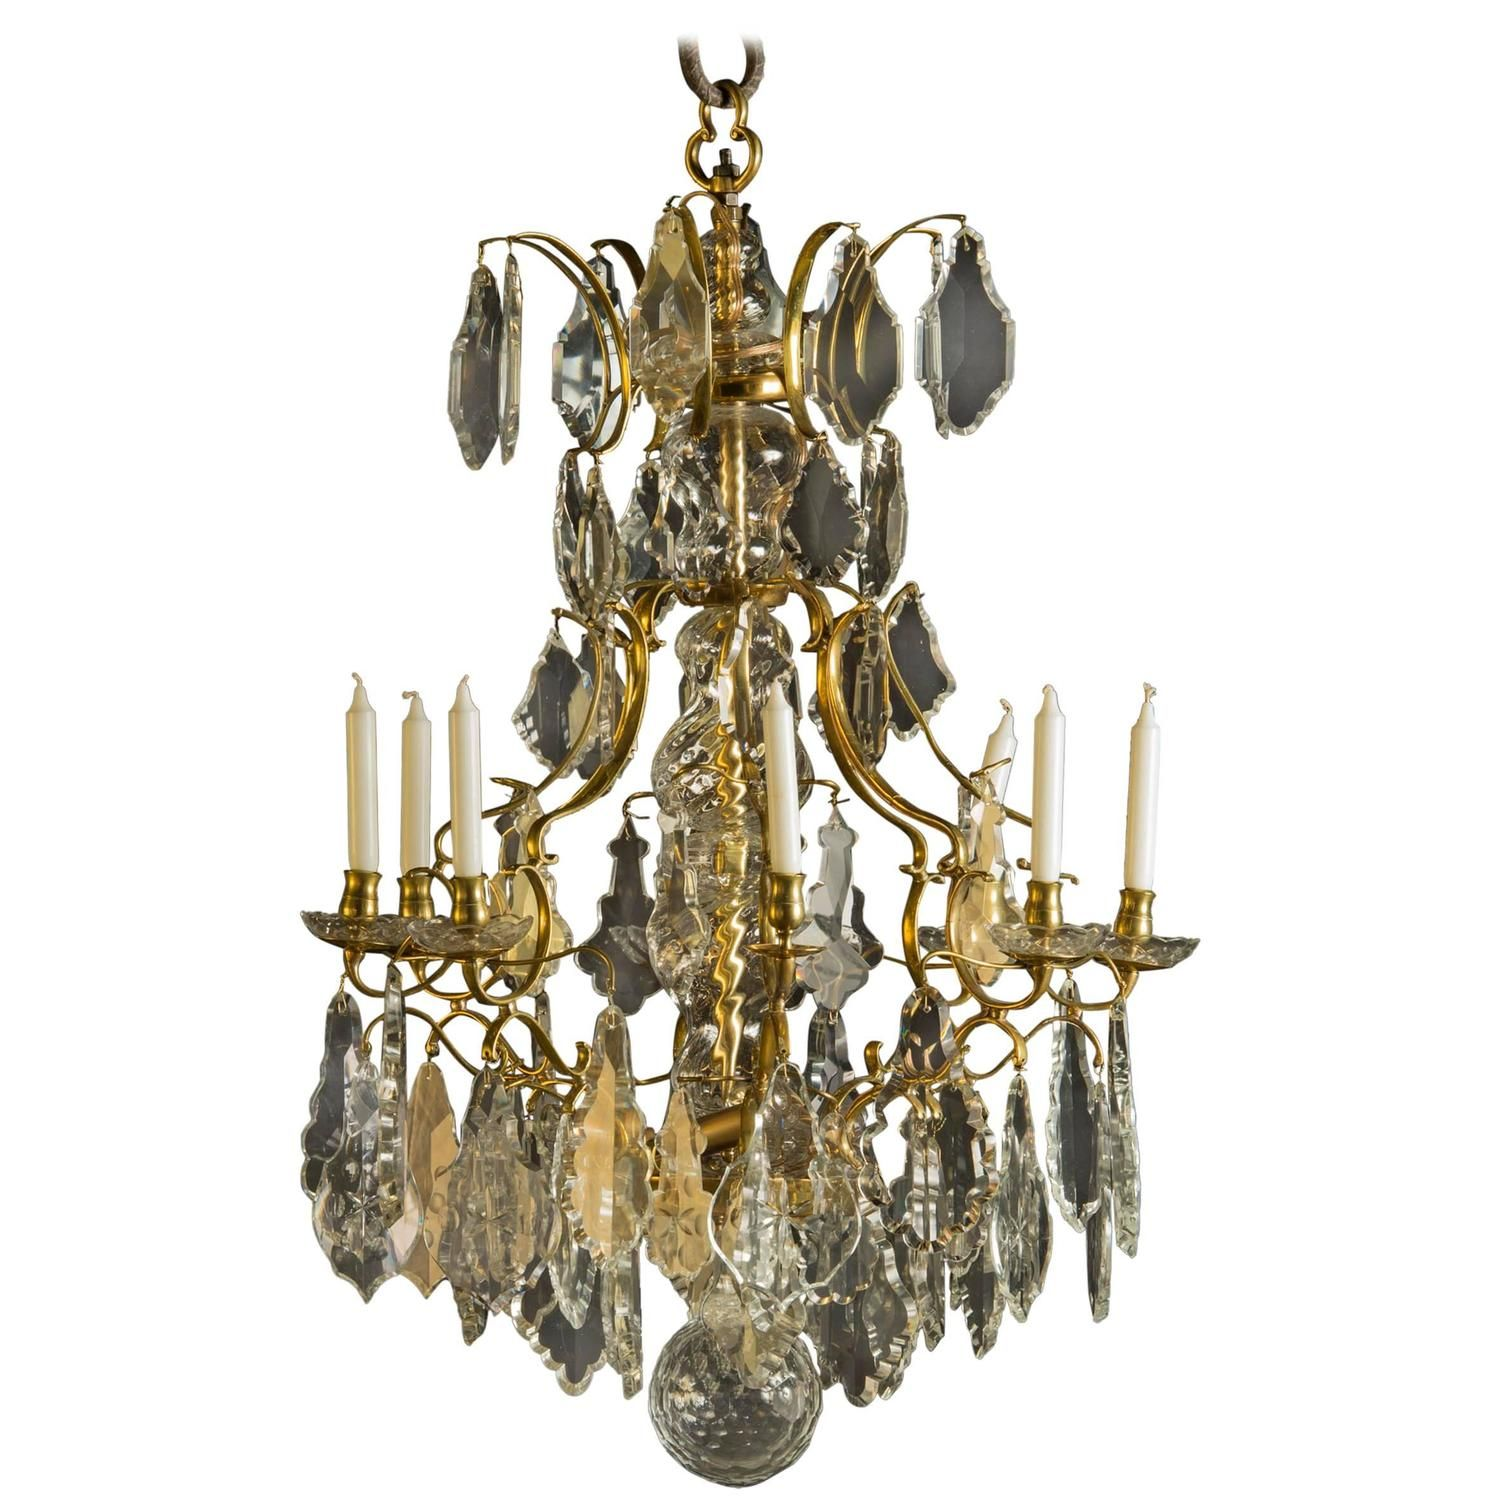 Swedish chandelier baroque style 1840 1860 from a unique swedish chandelier baroque style 1840 1860 from a unique collection of antique arubaitofo Image collections